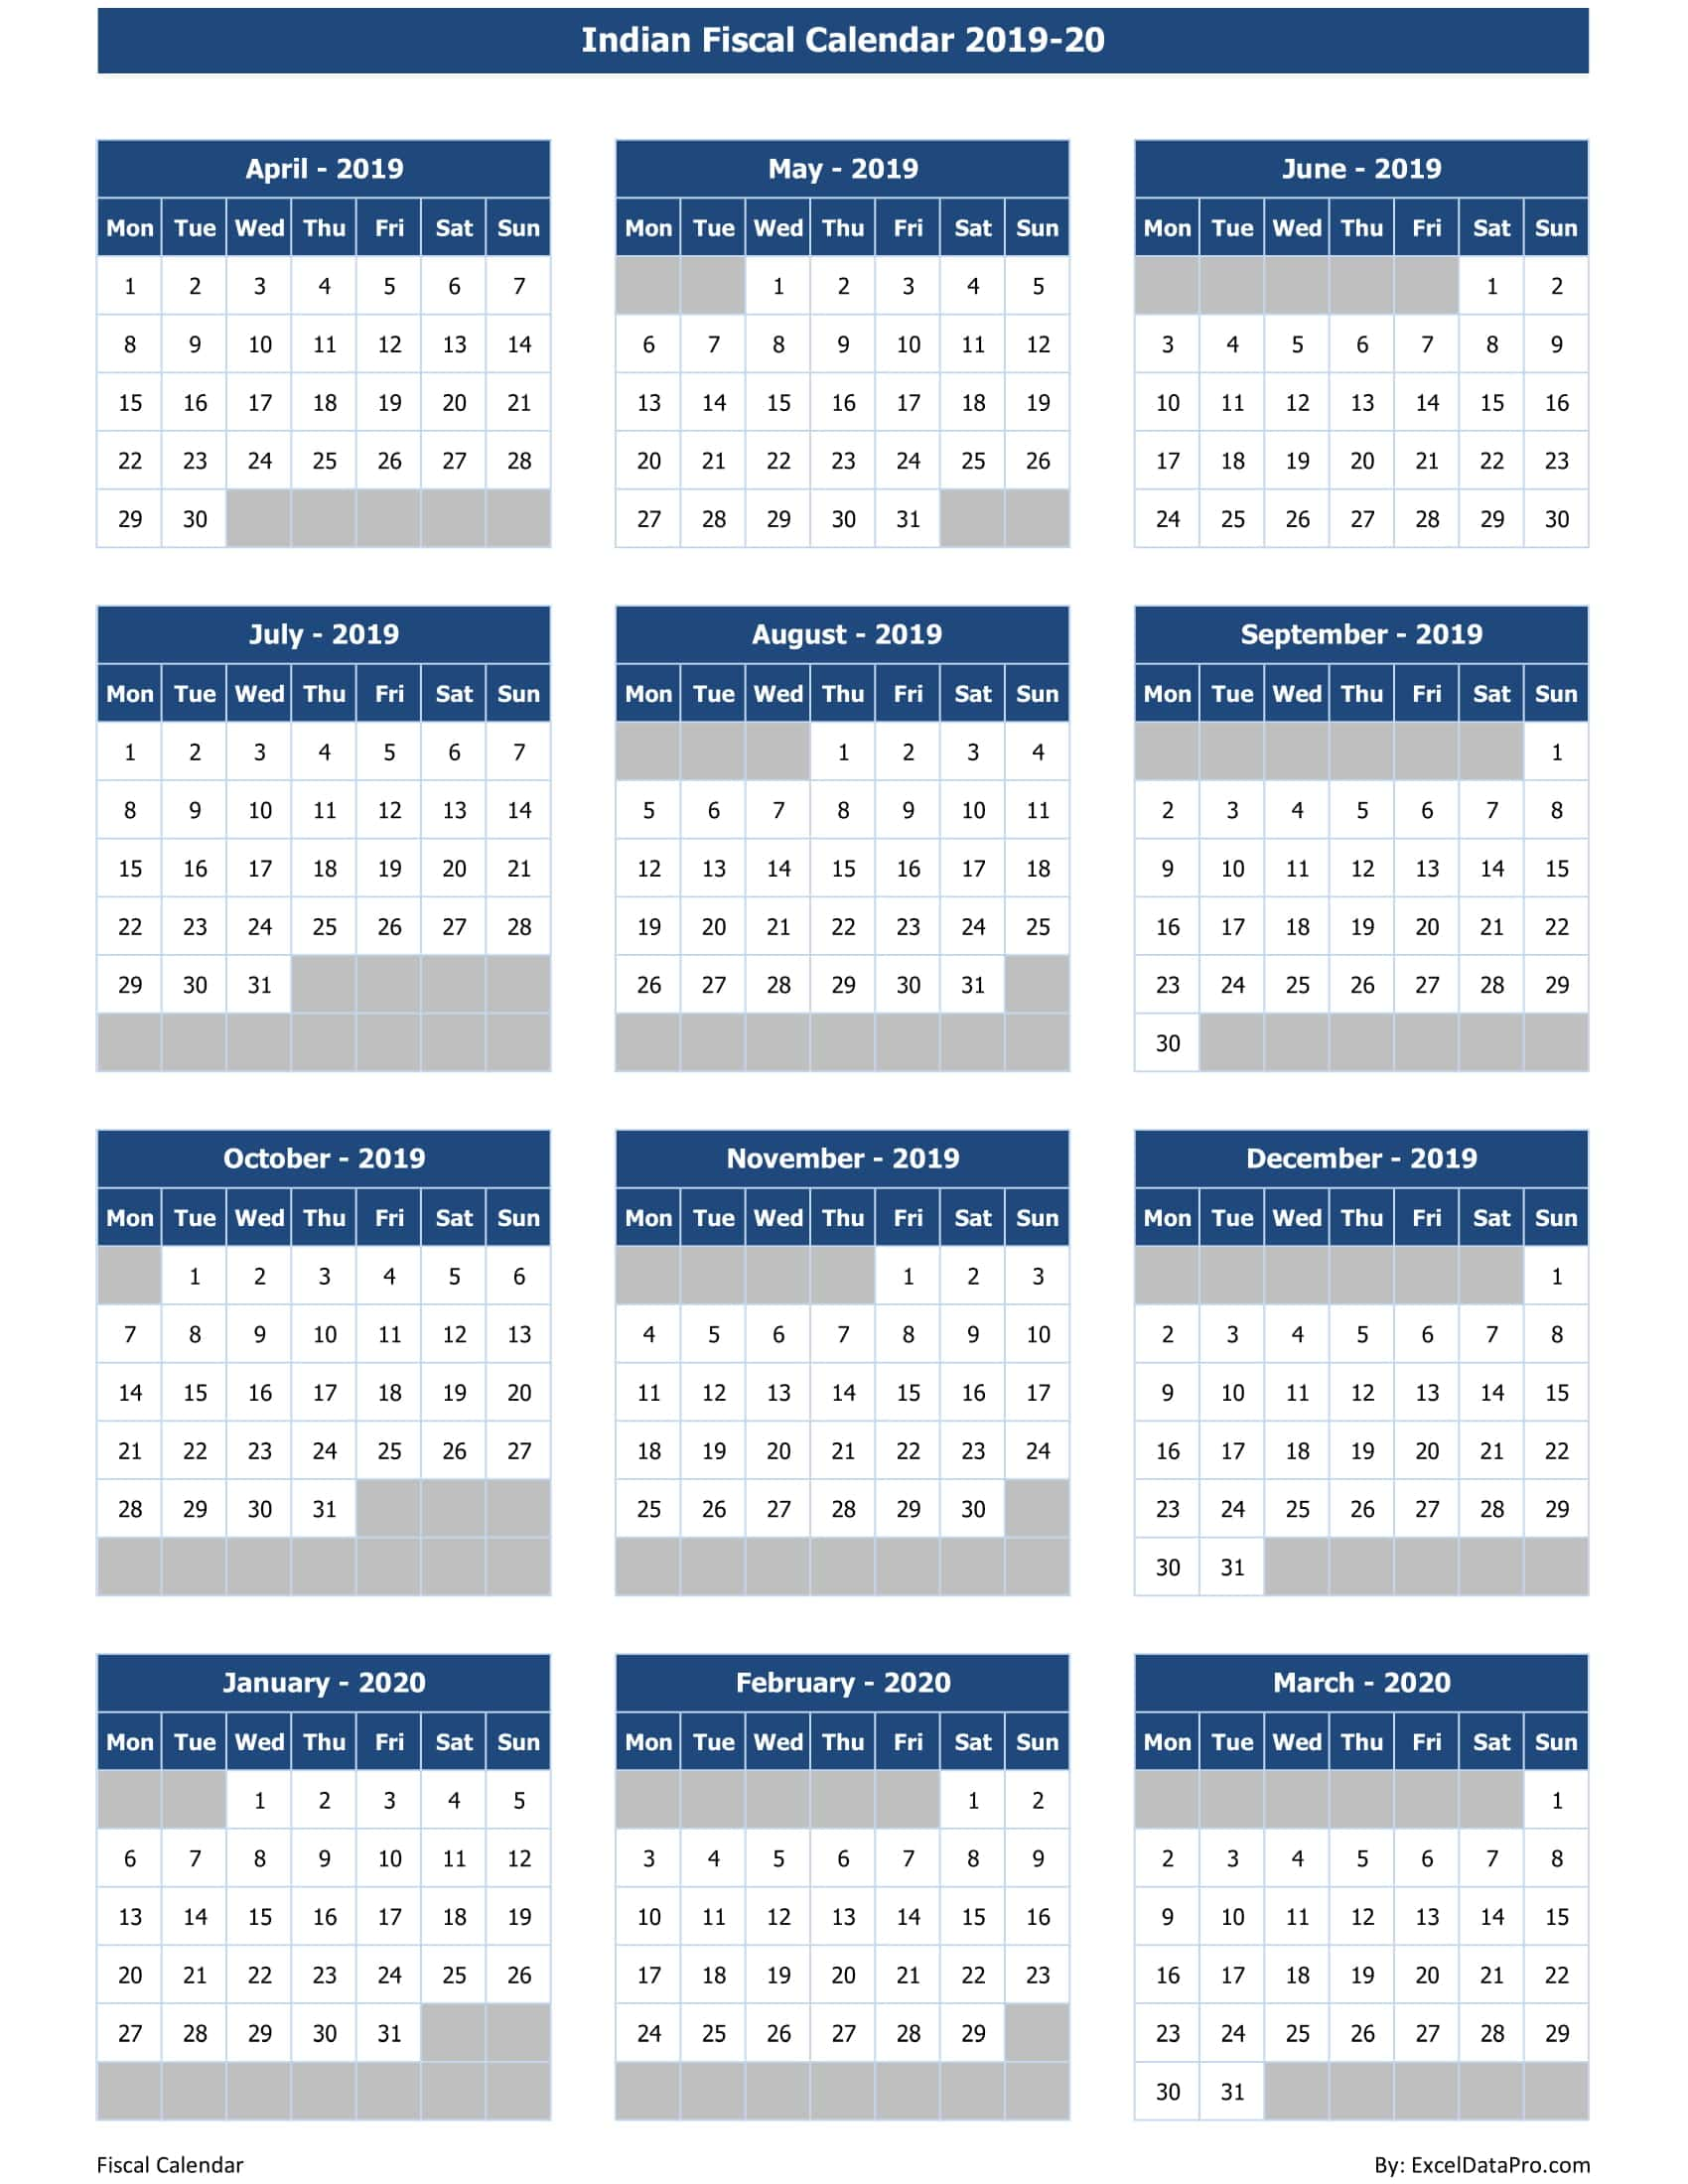 download indian fiscal calendar 2019 20 excel template